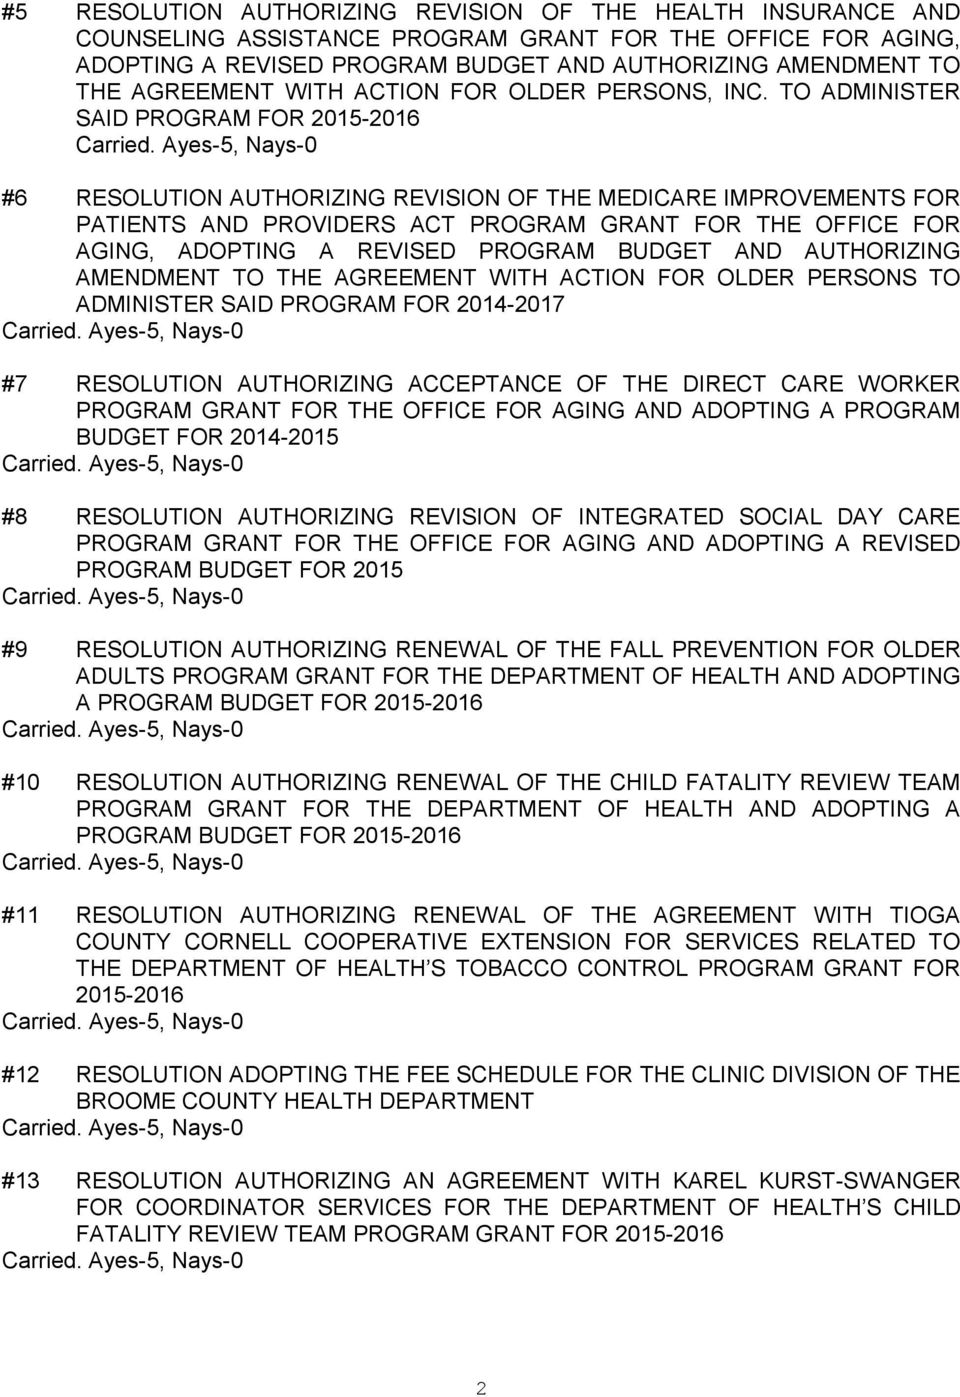 TO ADMINISTER SAID PROGRAM FOR 2015-2016 #6 RESOLUTION AUTHORIZING REVISION OF THE MEDICARE IMPROVEMENTS FOR PATIENTS AND PROVIDERS ACT PROGRAM GRANT FOR THE OFFICE FOR AGING, ADOPTING A REVISED